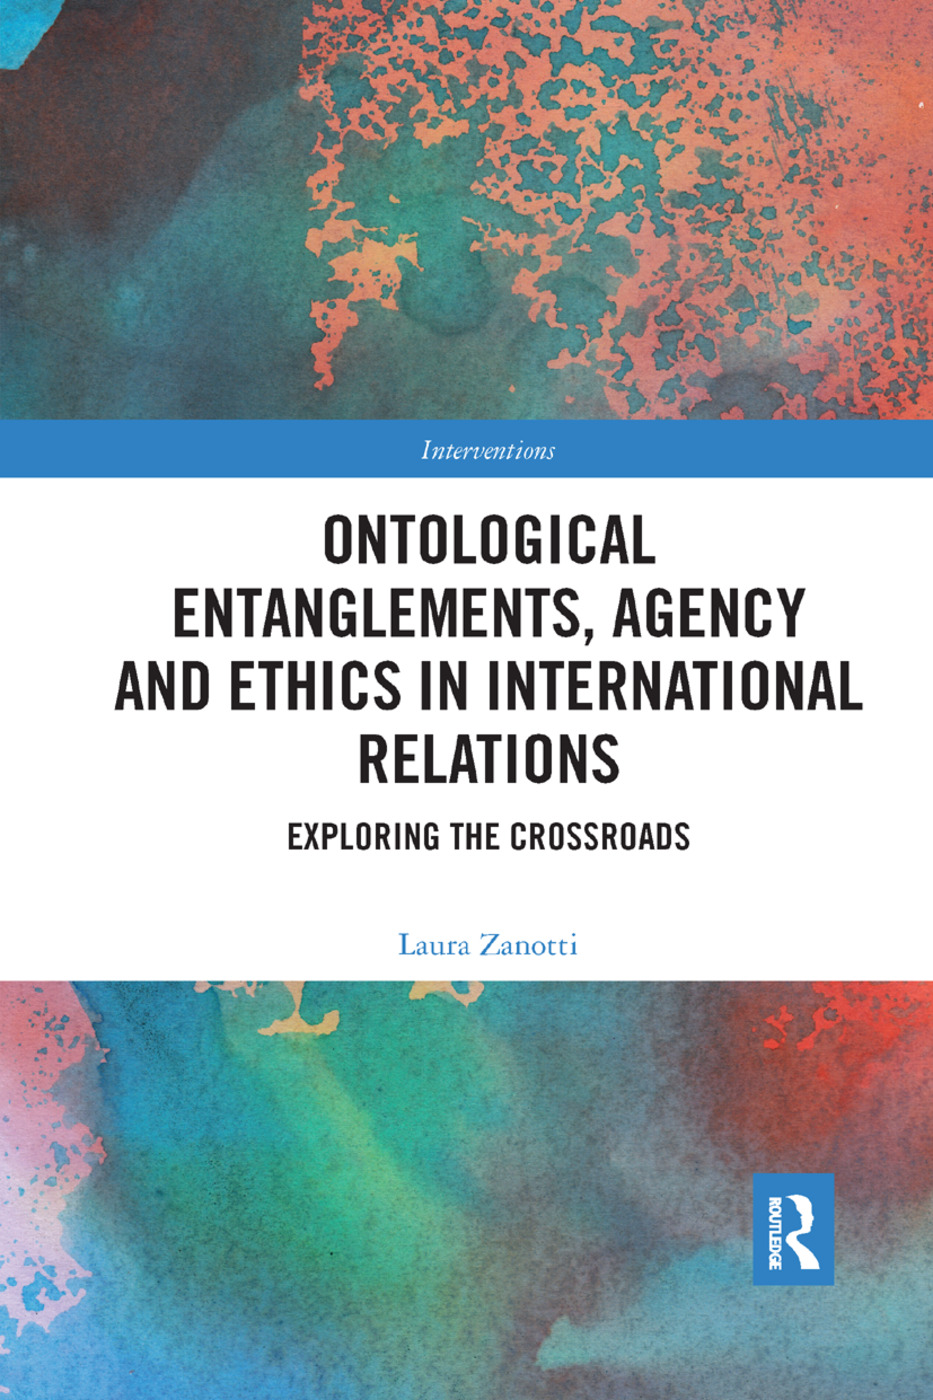 Ontological Entanglements, Agency and Ethics in International Relations: Exploring the Crossroads book cover